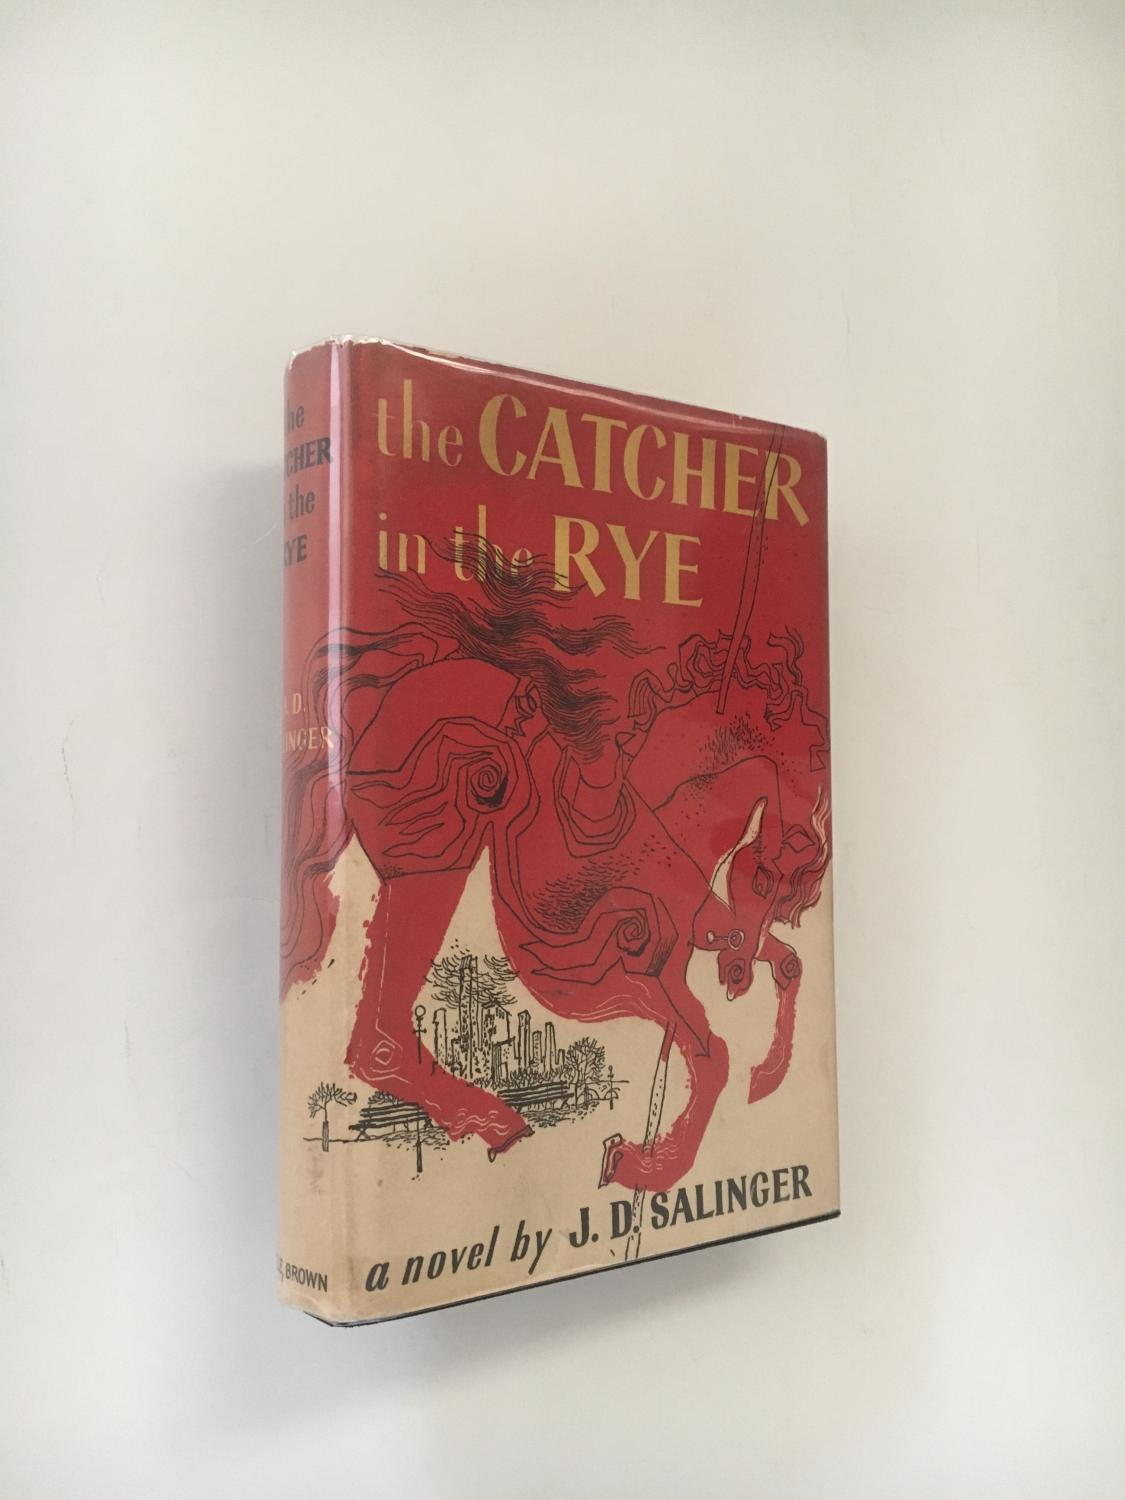 when does catcher in the rye take place